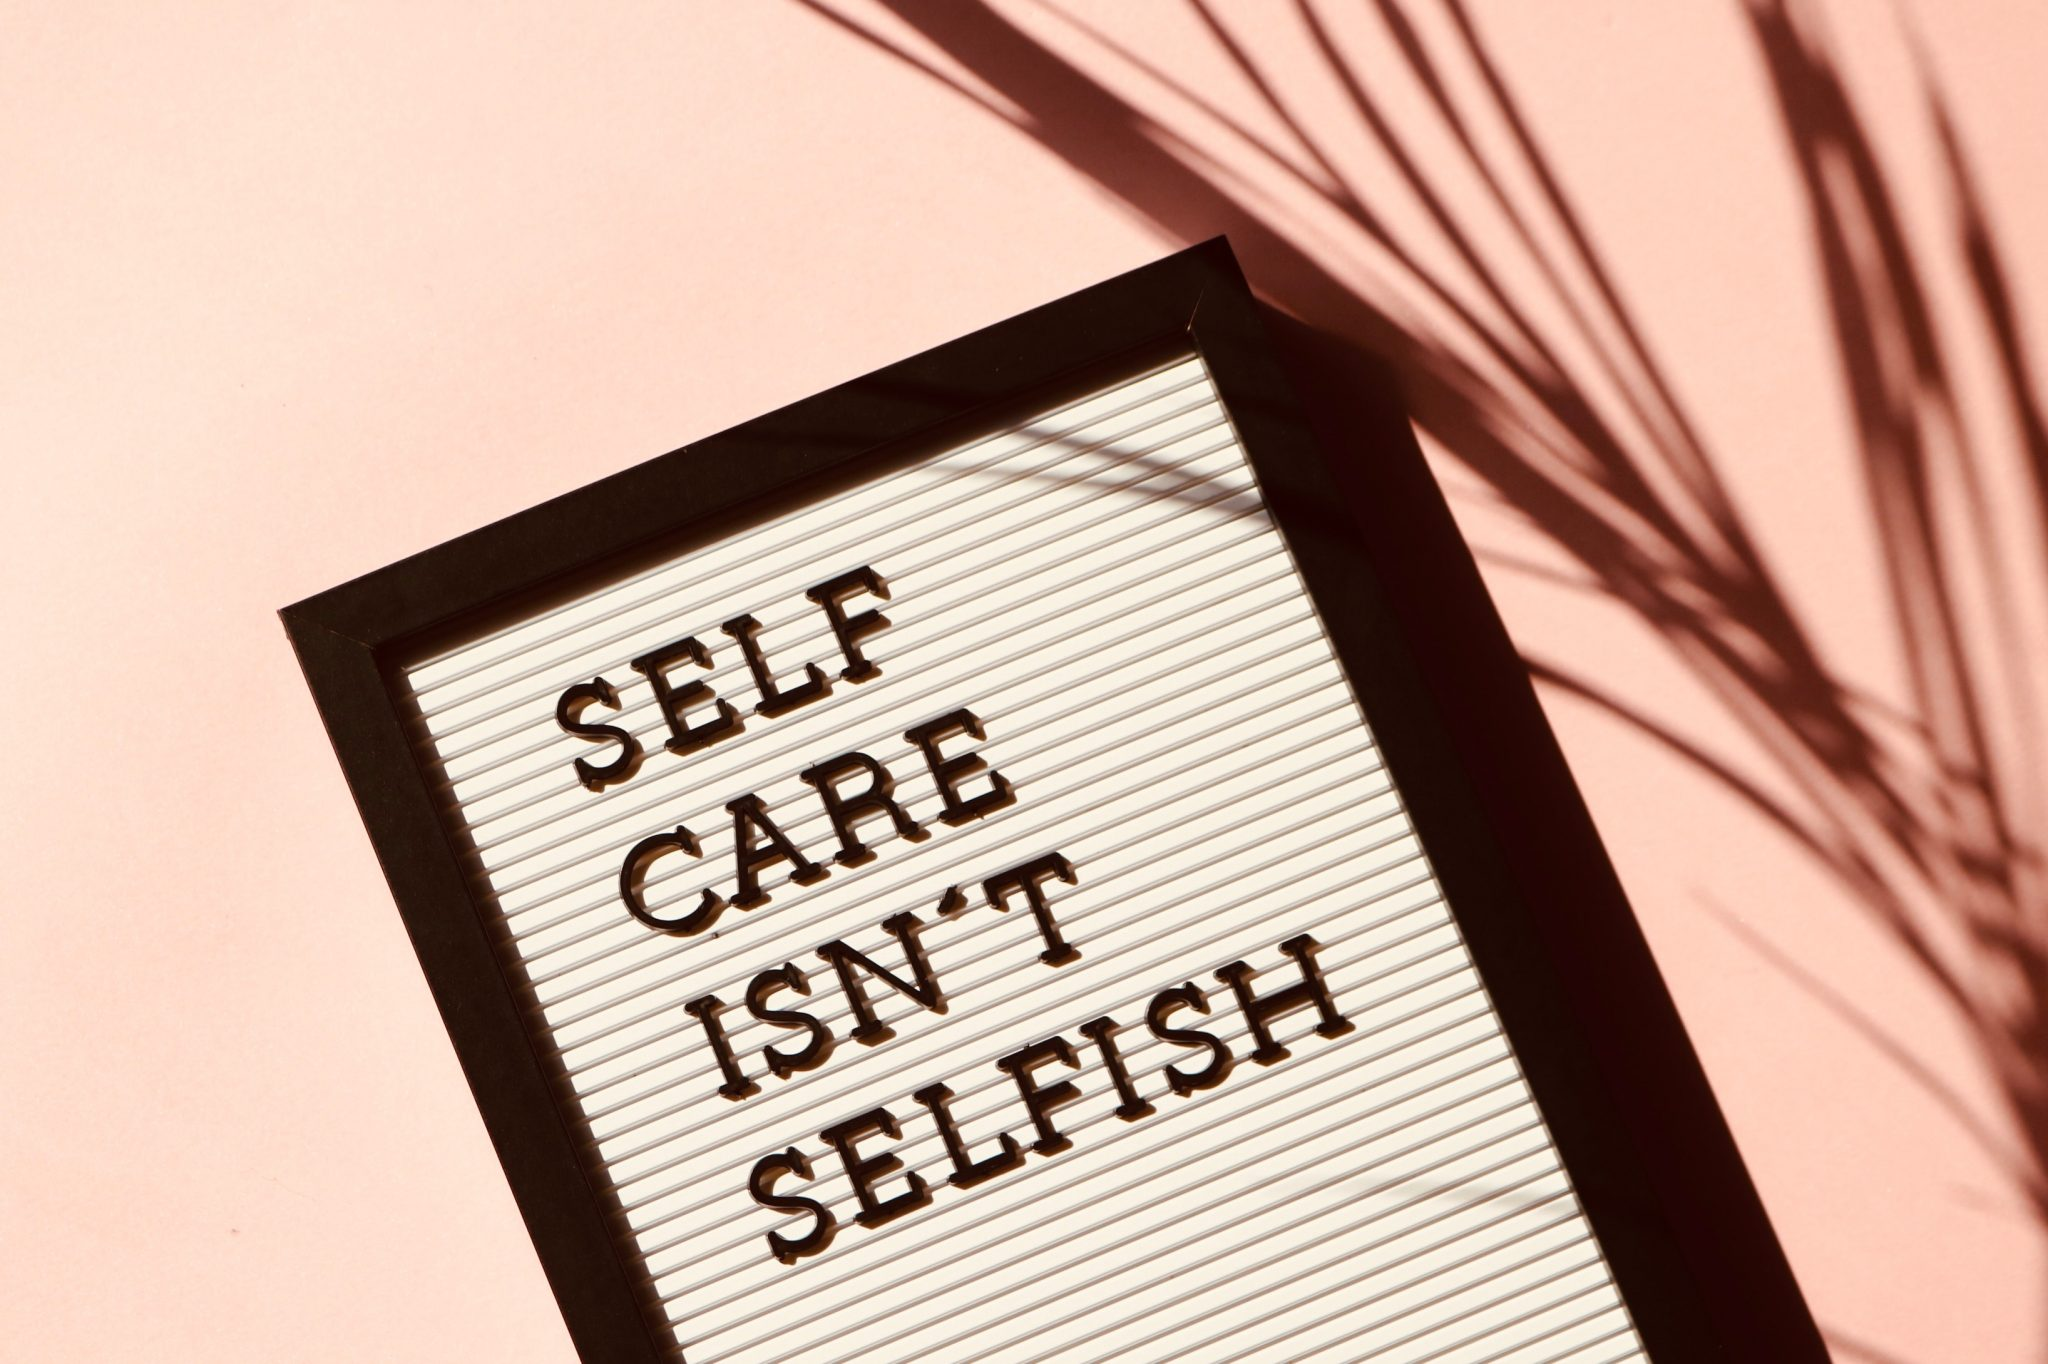 OKAY SELF CARE. PHOTO MADISON INOUYE / PEXELS